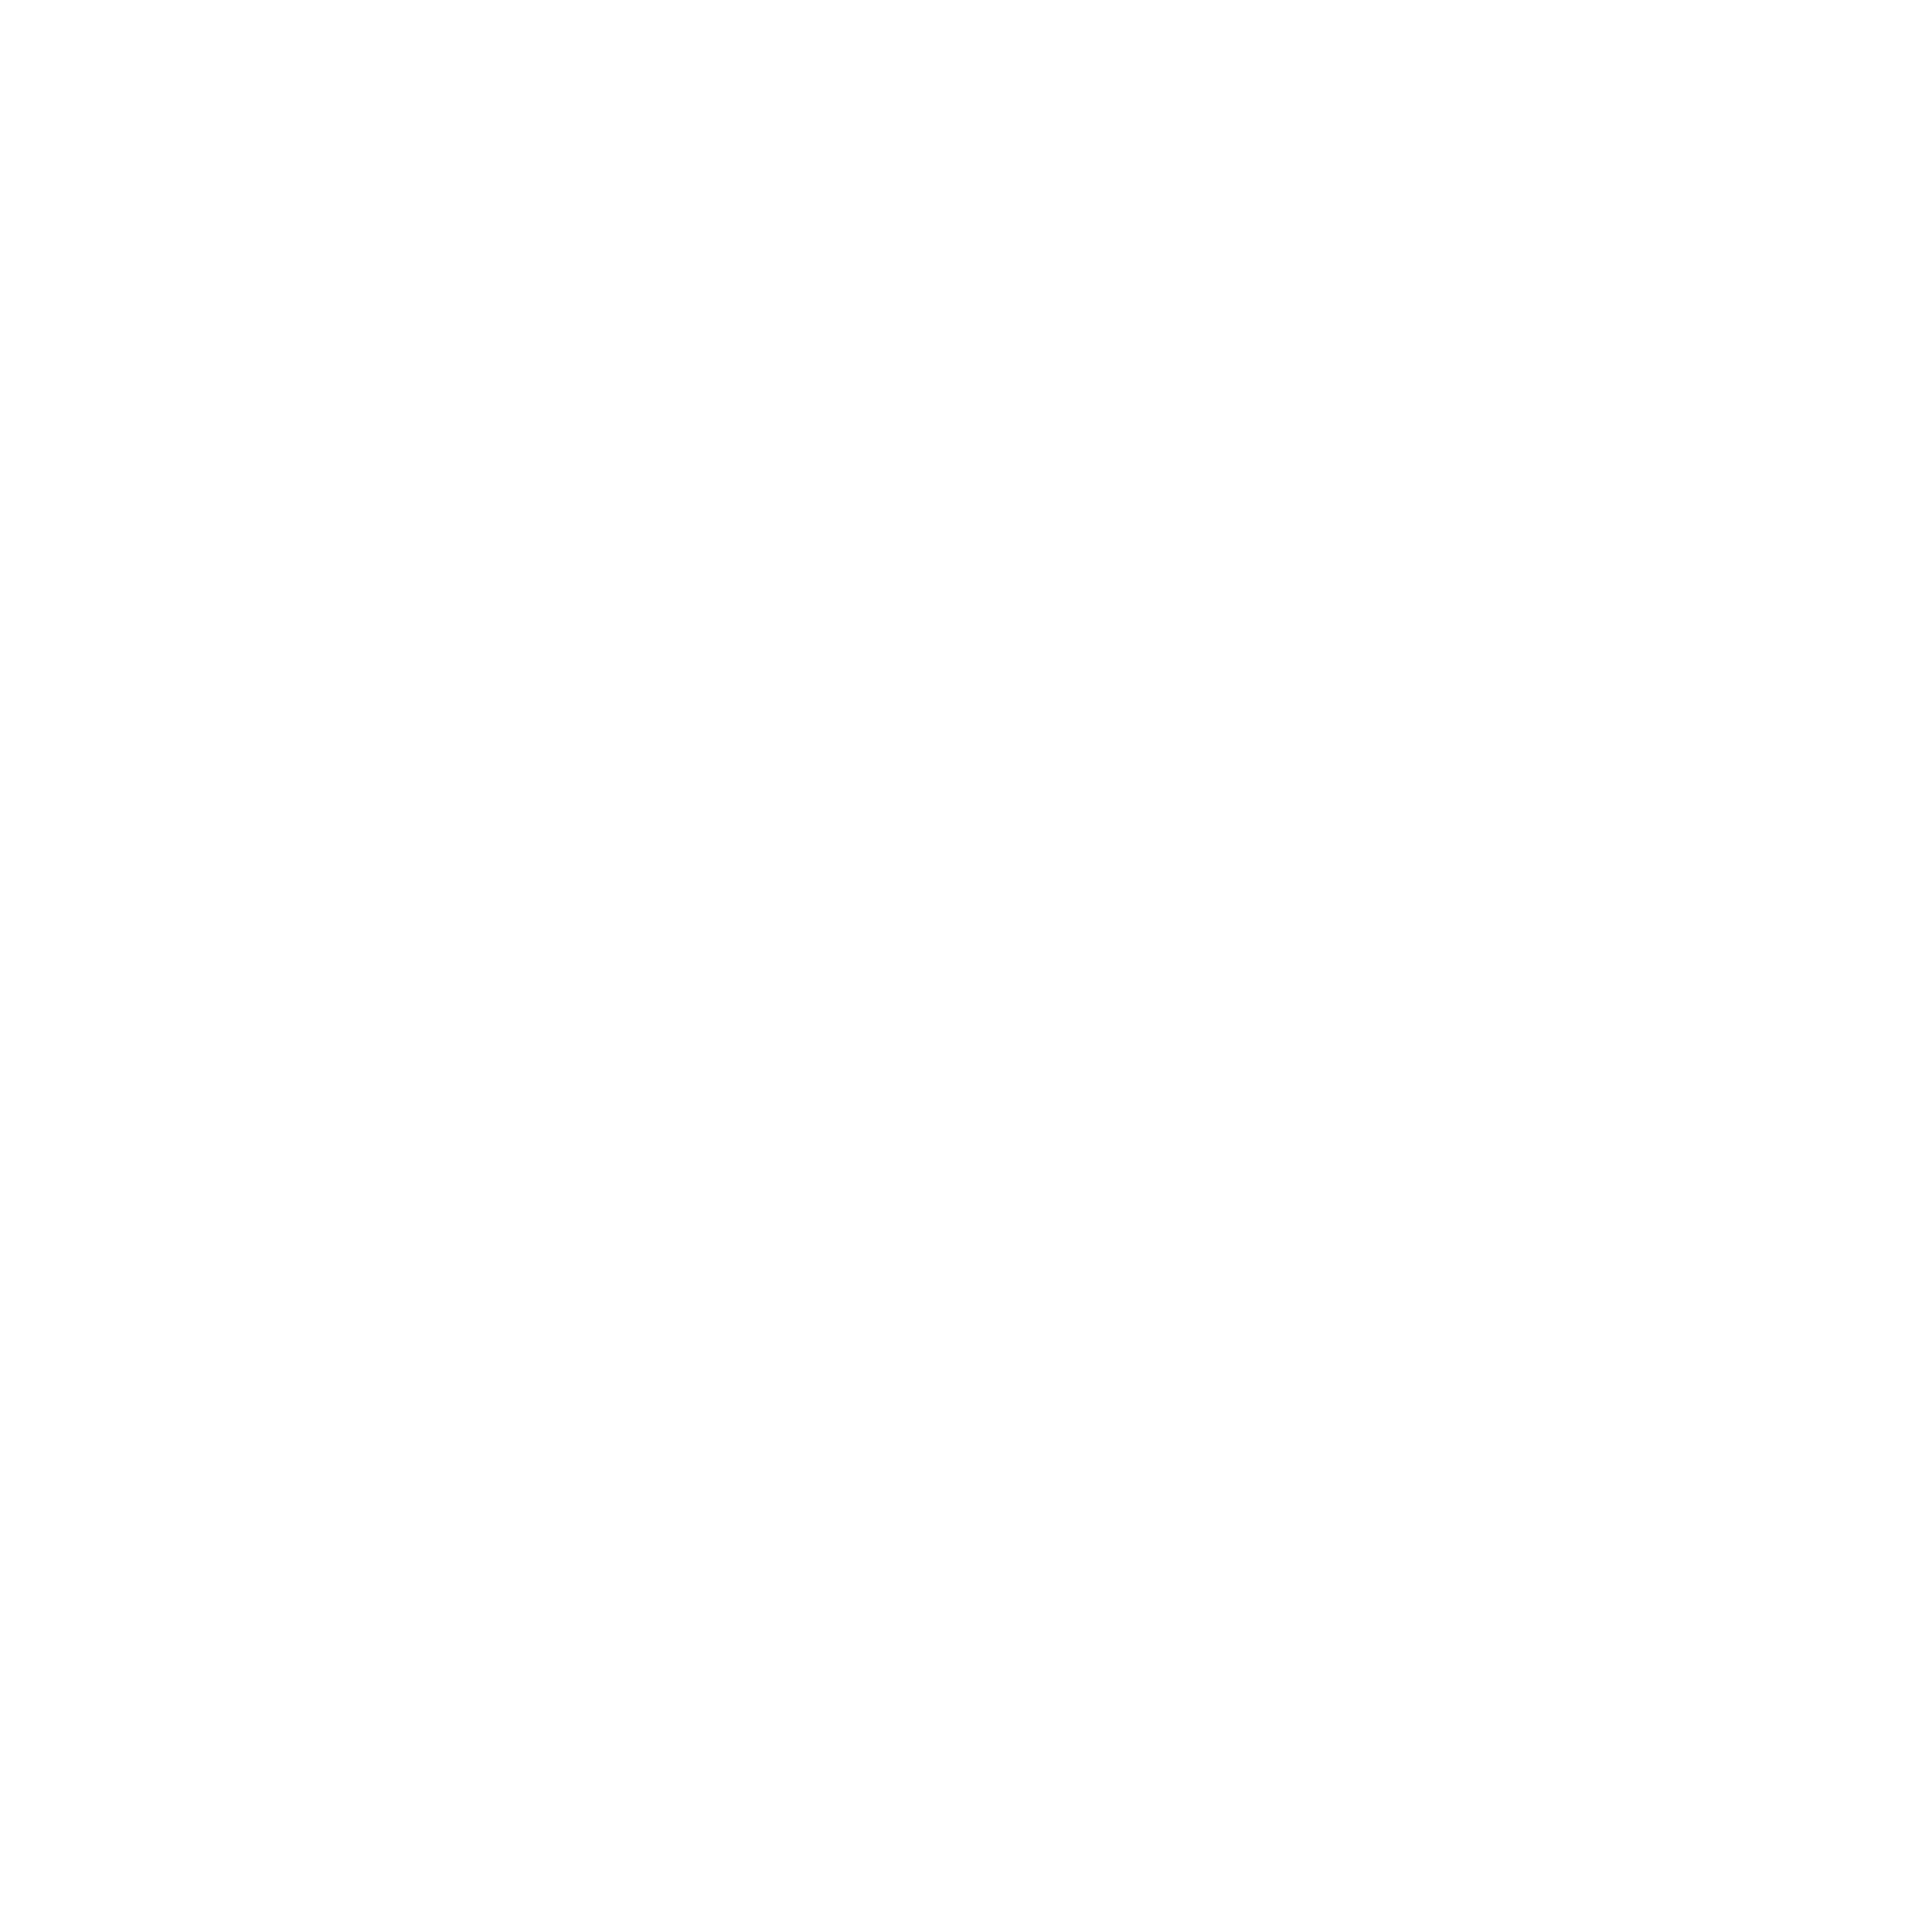 Mapped